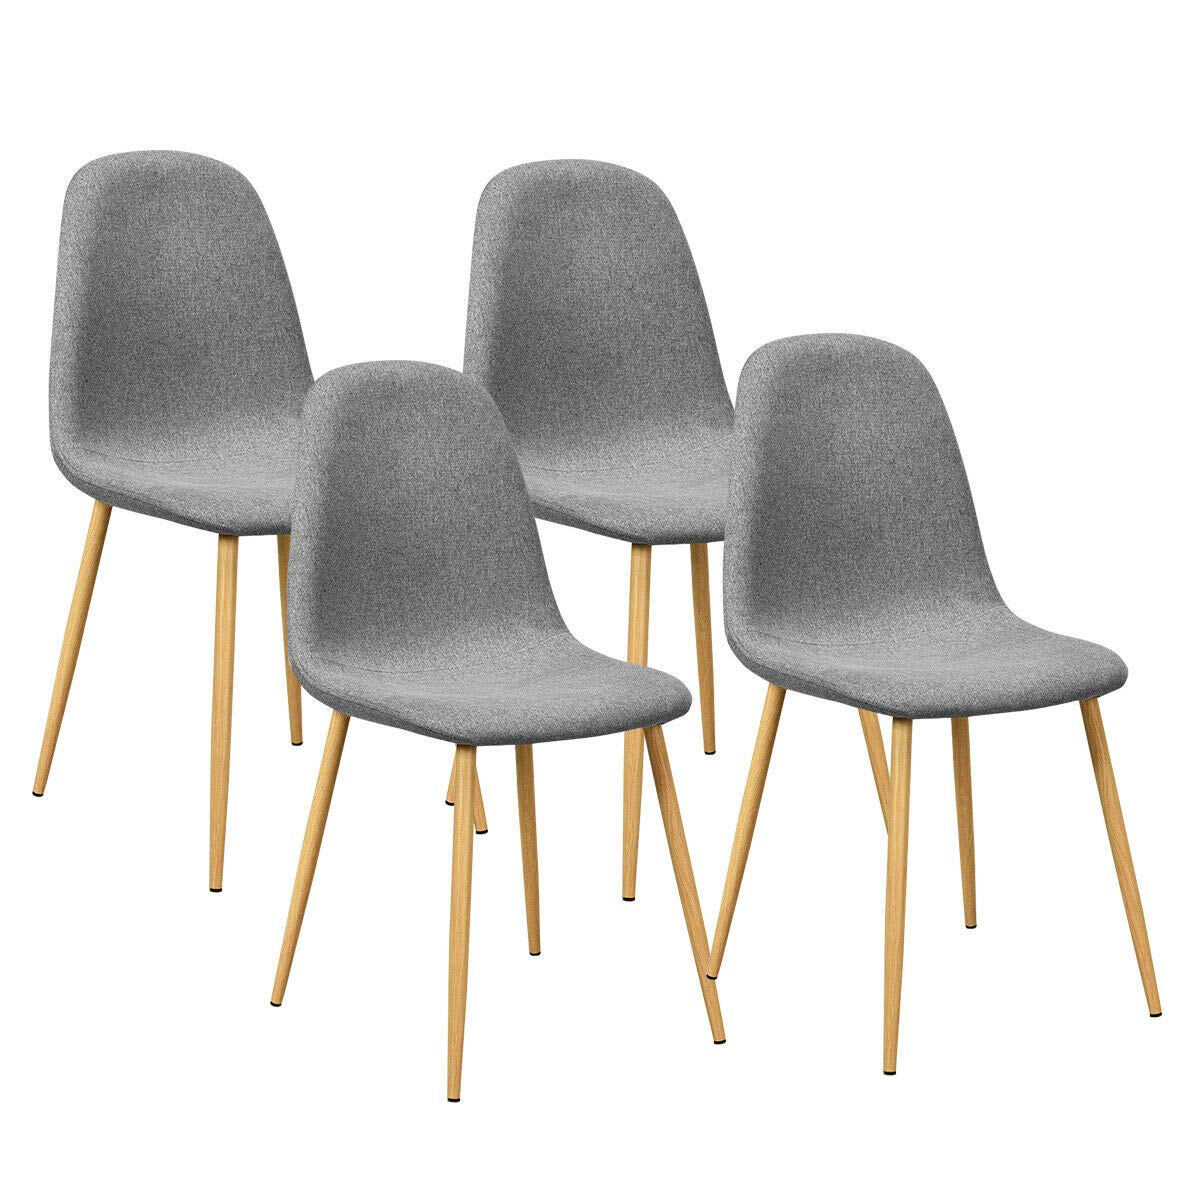 Giantex Set of 4 Kitchen Dining Chairs, Easily Assemble Modern Fabric Cushion Seat Chair w Metal Legs, Mid Century Armless Chairs for Kitchen, Dining Room, Restaurant, Gray